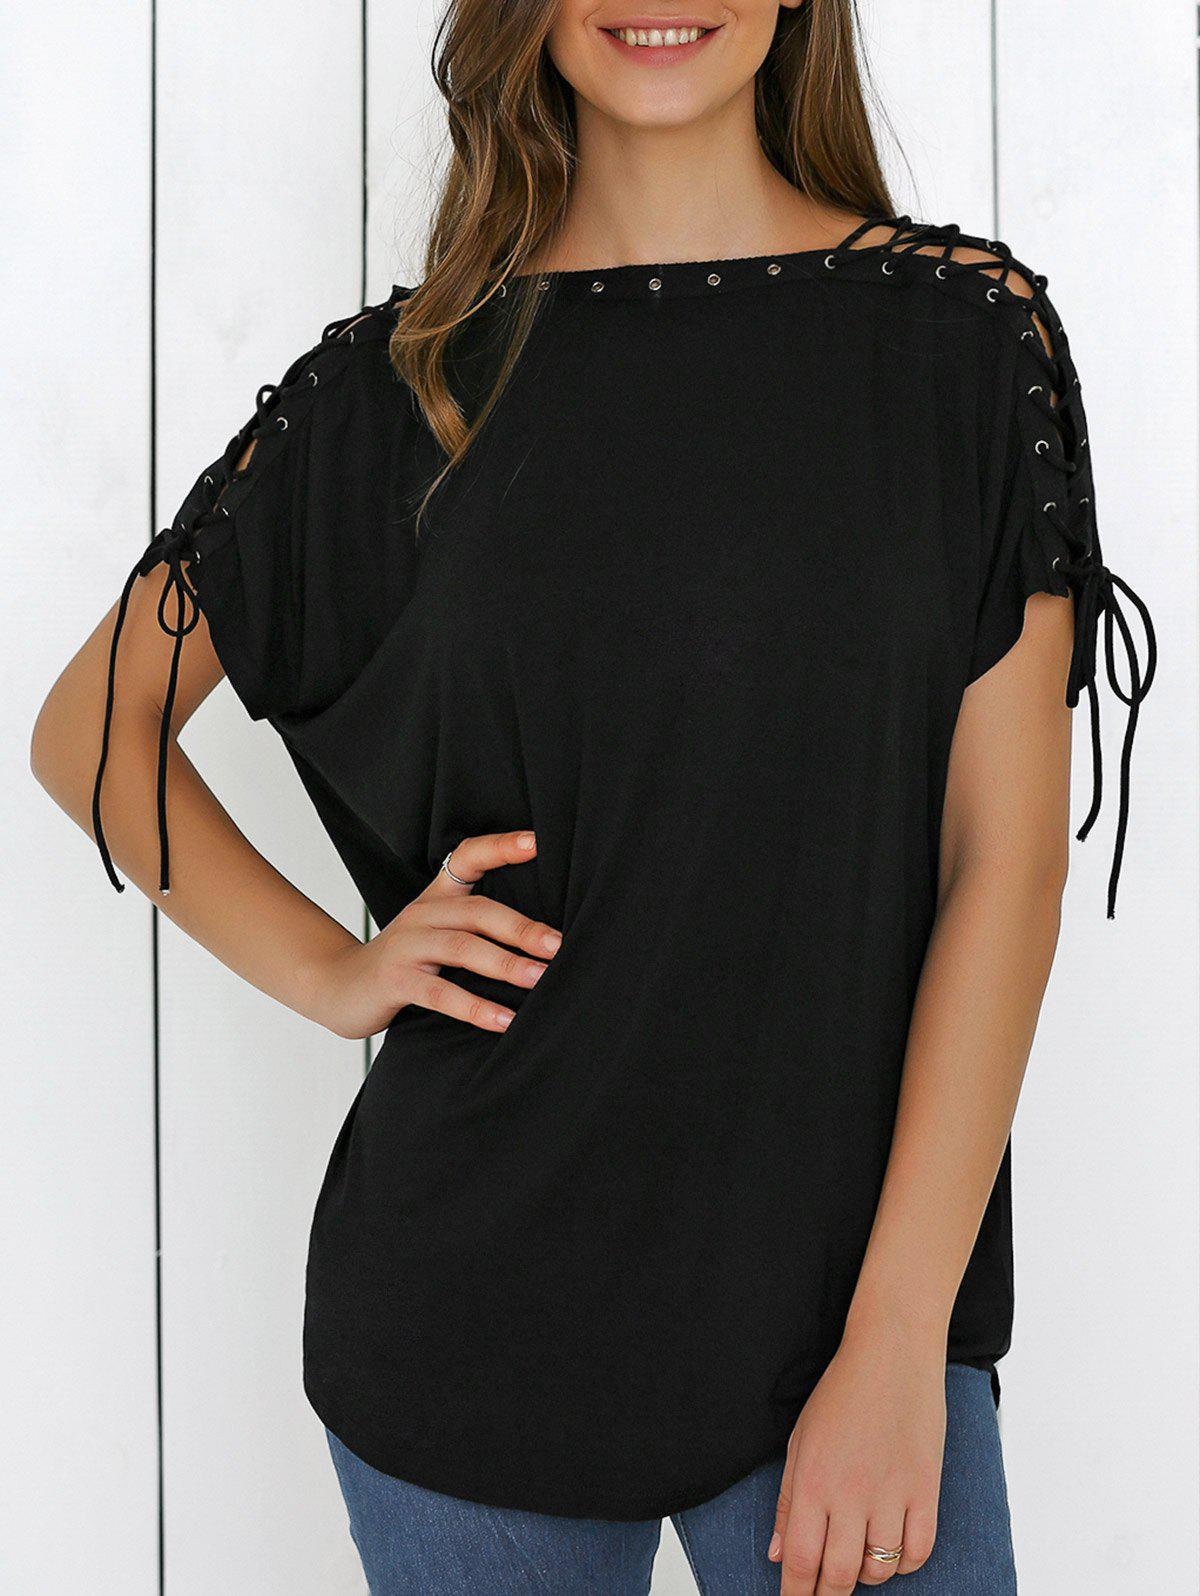 Lace-Up Batwing Sleeve T-ShirtWomen<br><br><br>Size: M<br>Color: BLACK